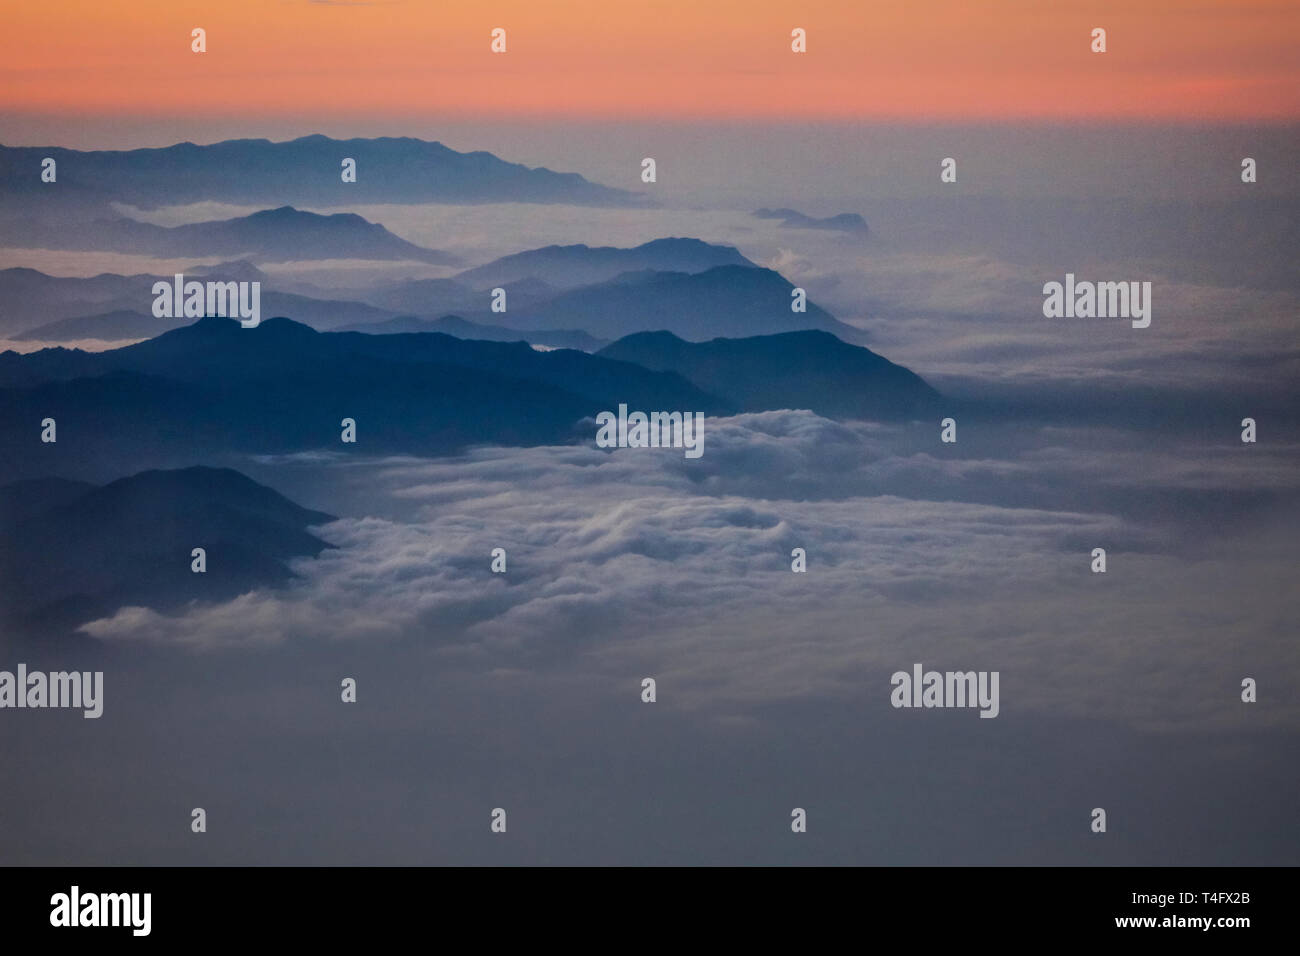 Dense white clouds covering high black peaks of the african mountains. New day begins with the sunlight coming up from the horizon. Stock Photo